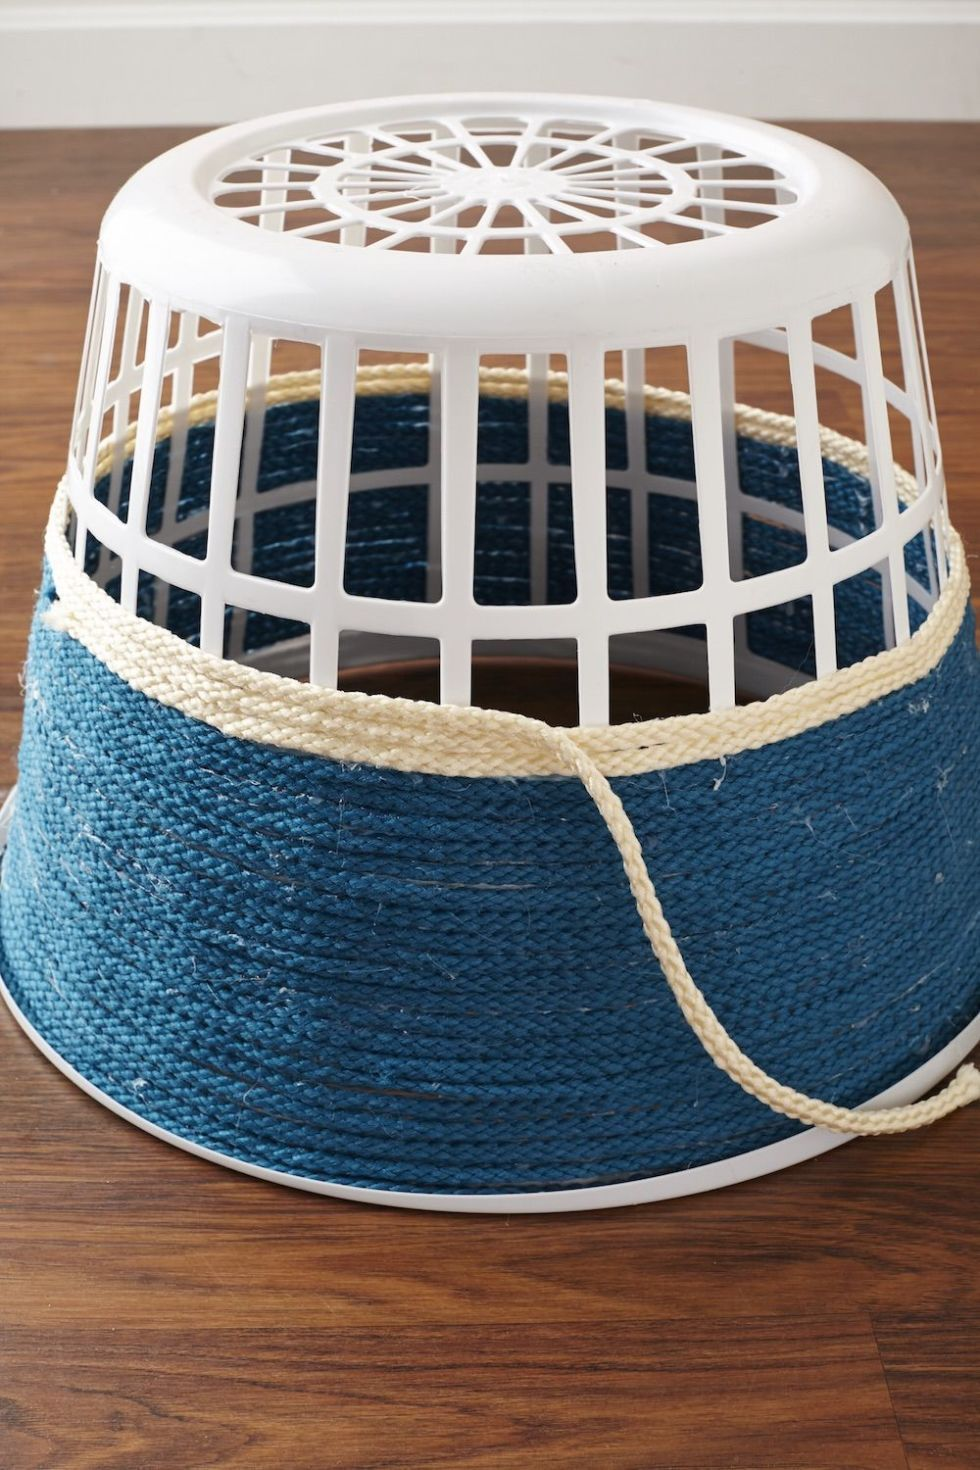 Turn That Ugly AF Laundry Basket Into Pretty Decor In 3 Easy Steps